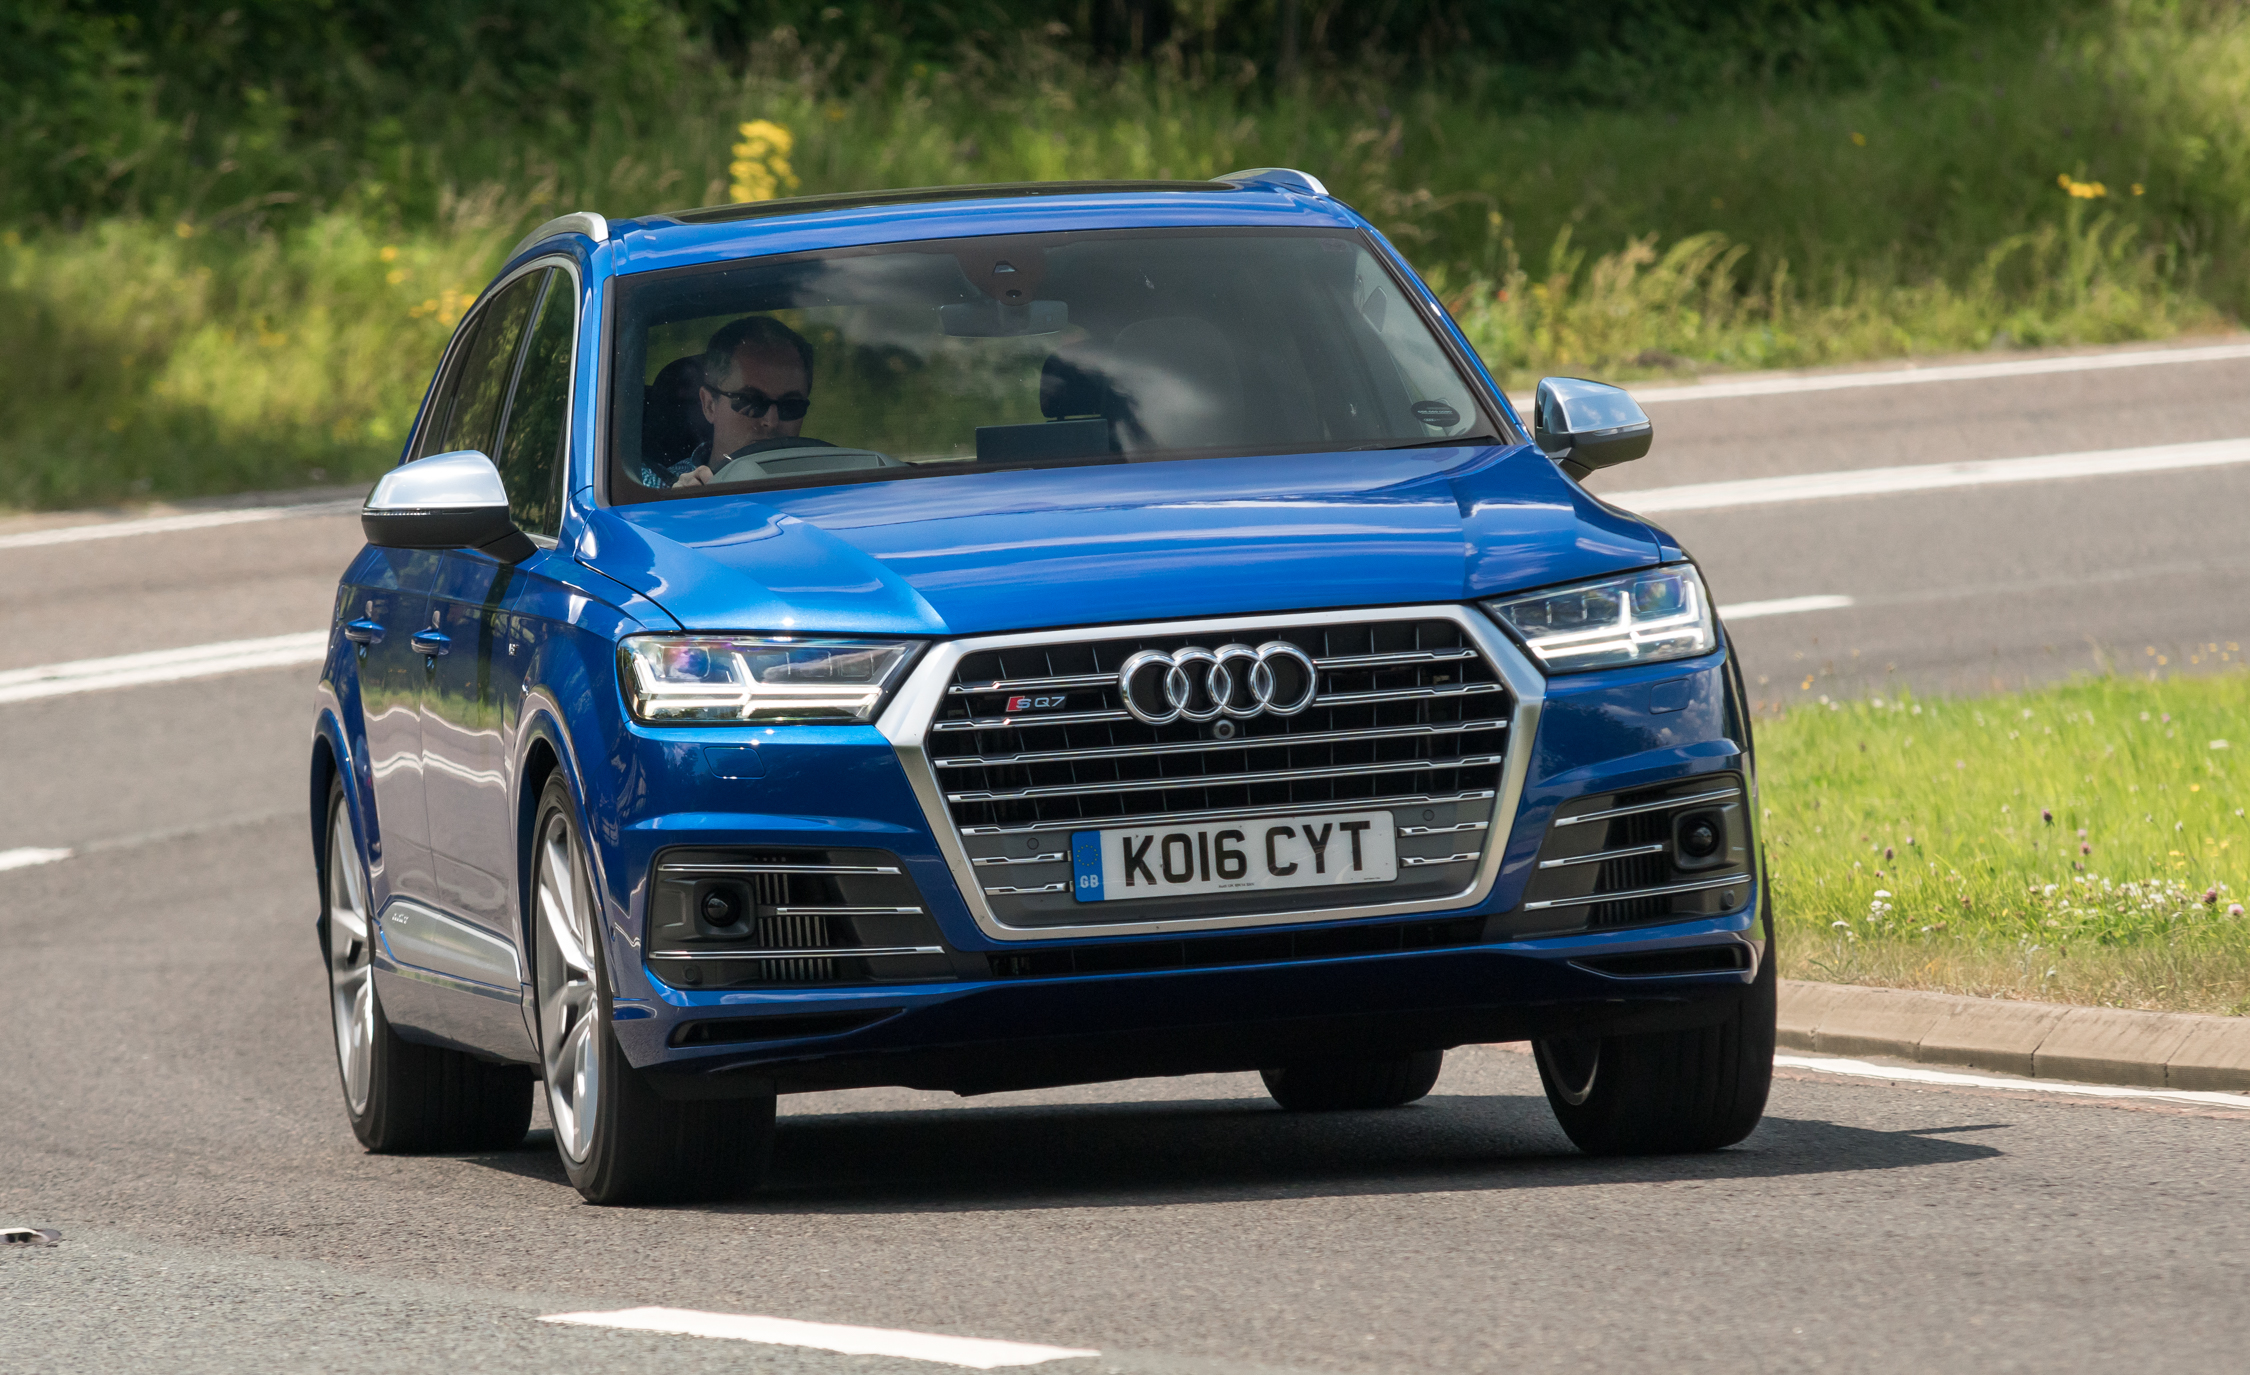 2017 Audi Sq7 Test Drive Front View (View 12 of 15)